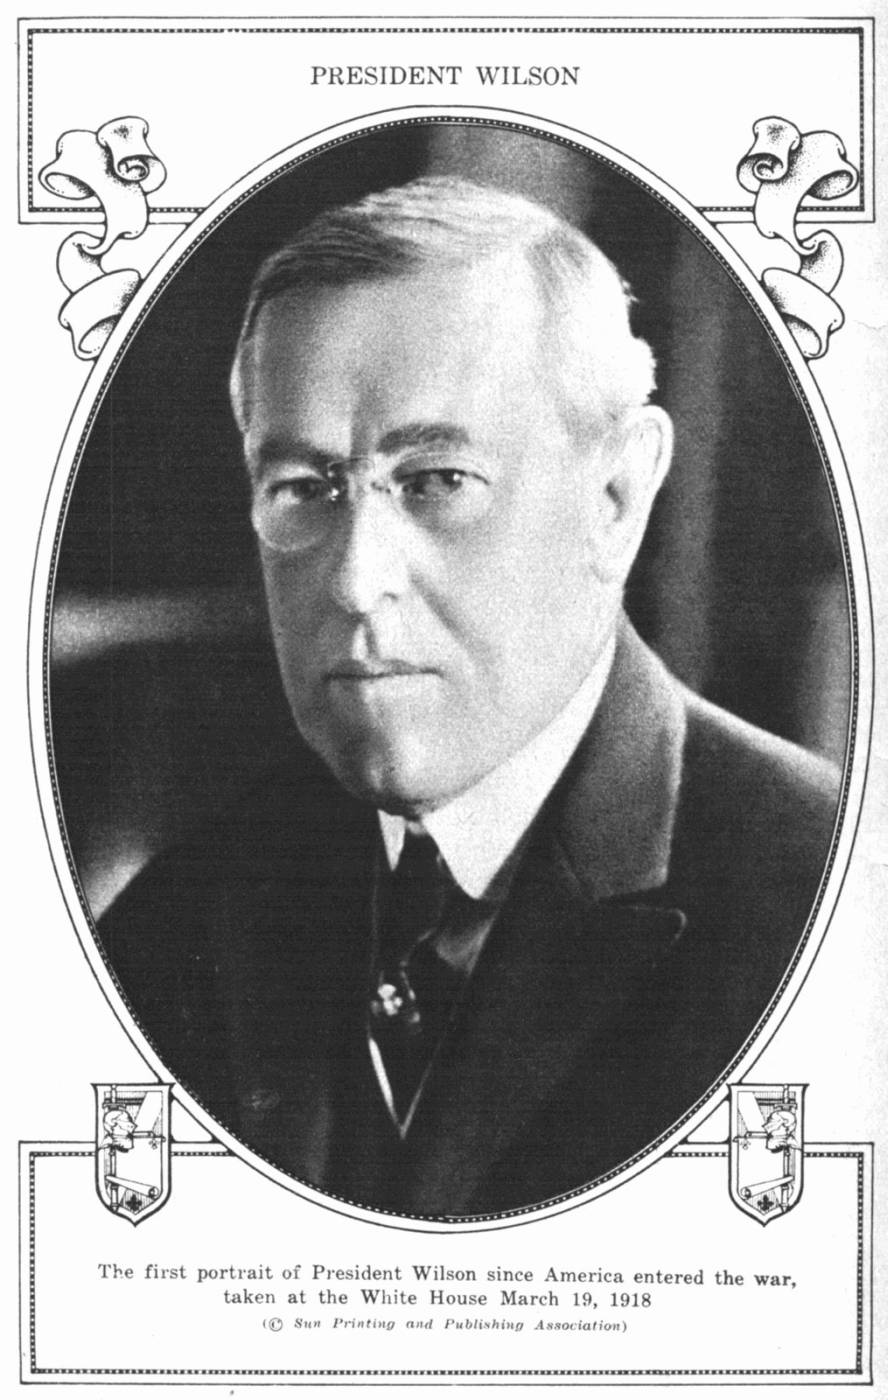 The project gutenberg ebook of current history a monthly magazine president wilson the first portrait of president wilson since america entered the war taken at fandeluxe Document